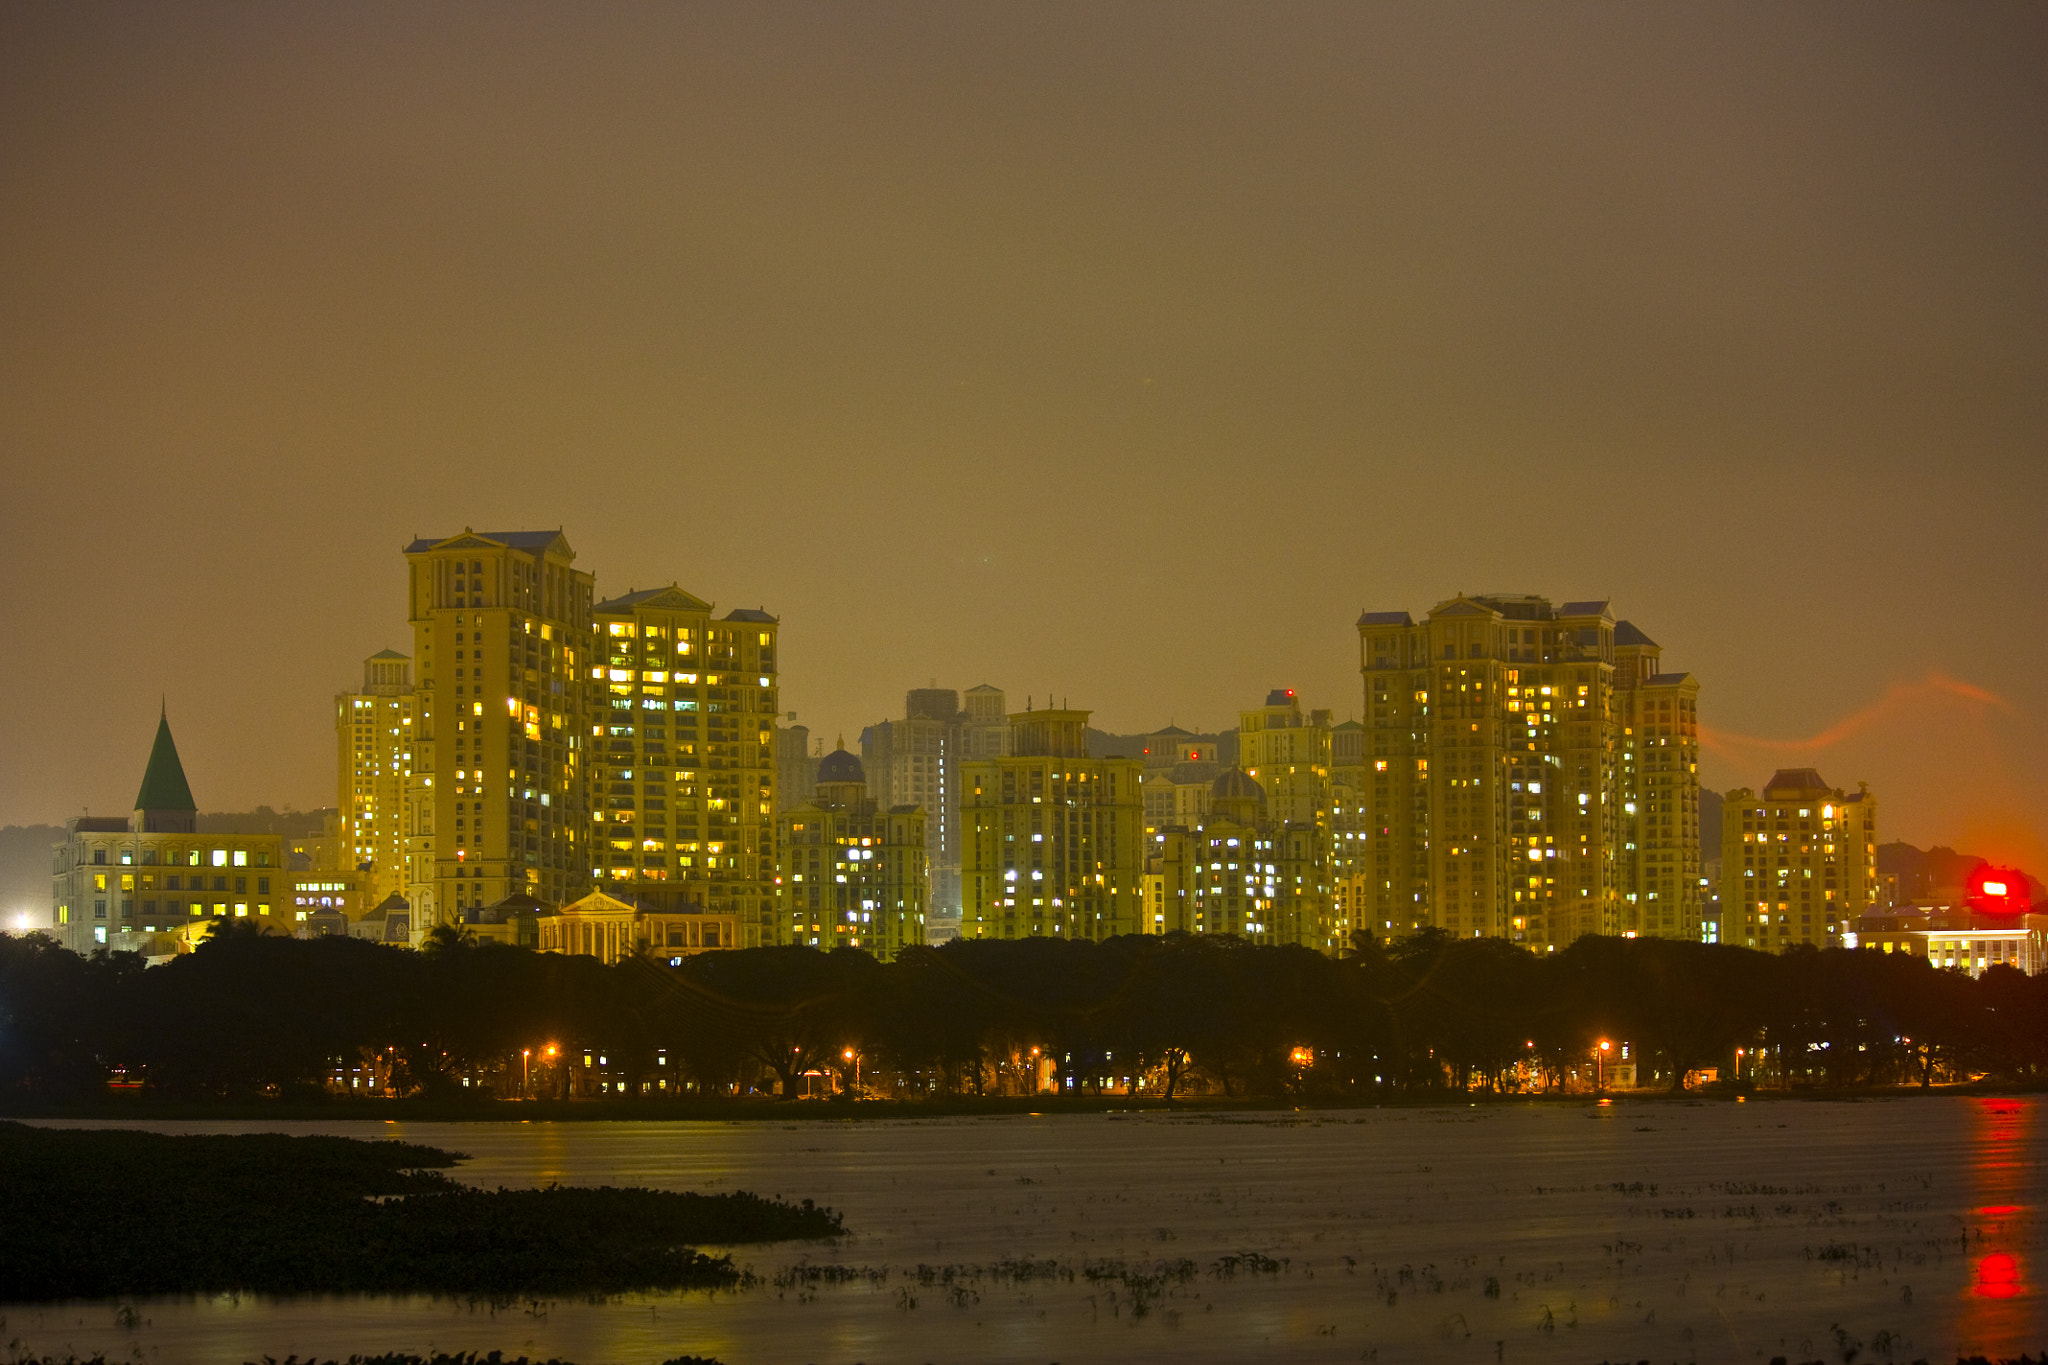 Photograph From IIT Mumbai by Ramakant Gawande on 500px